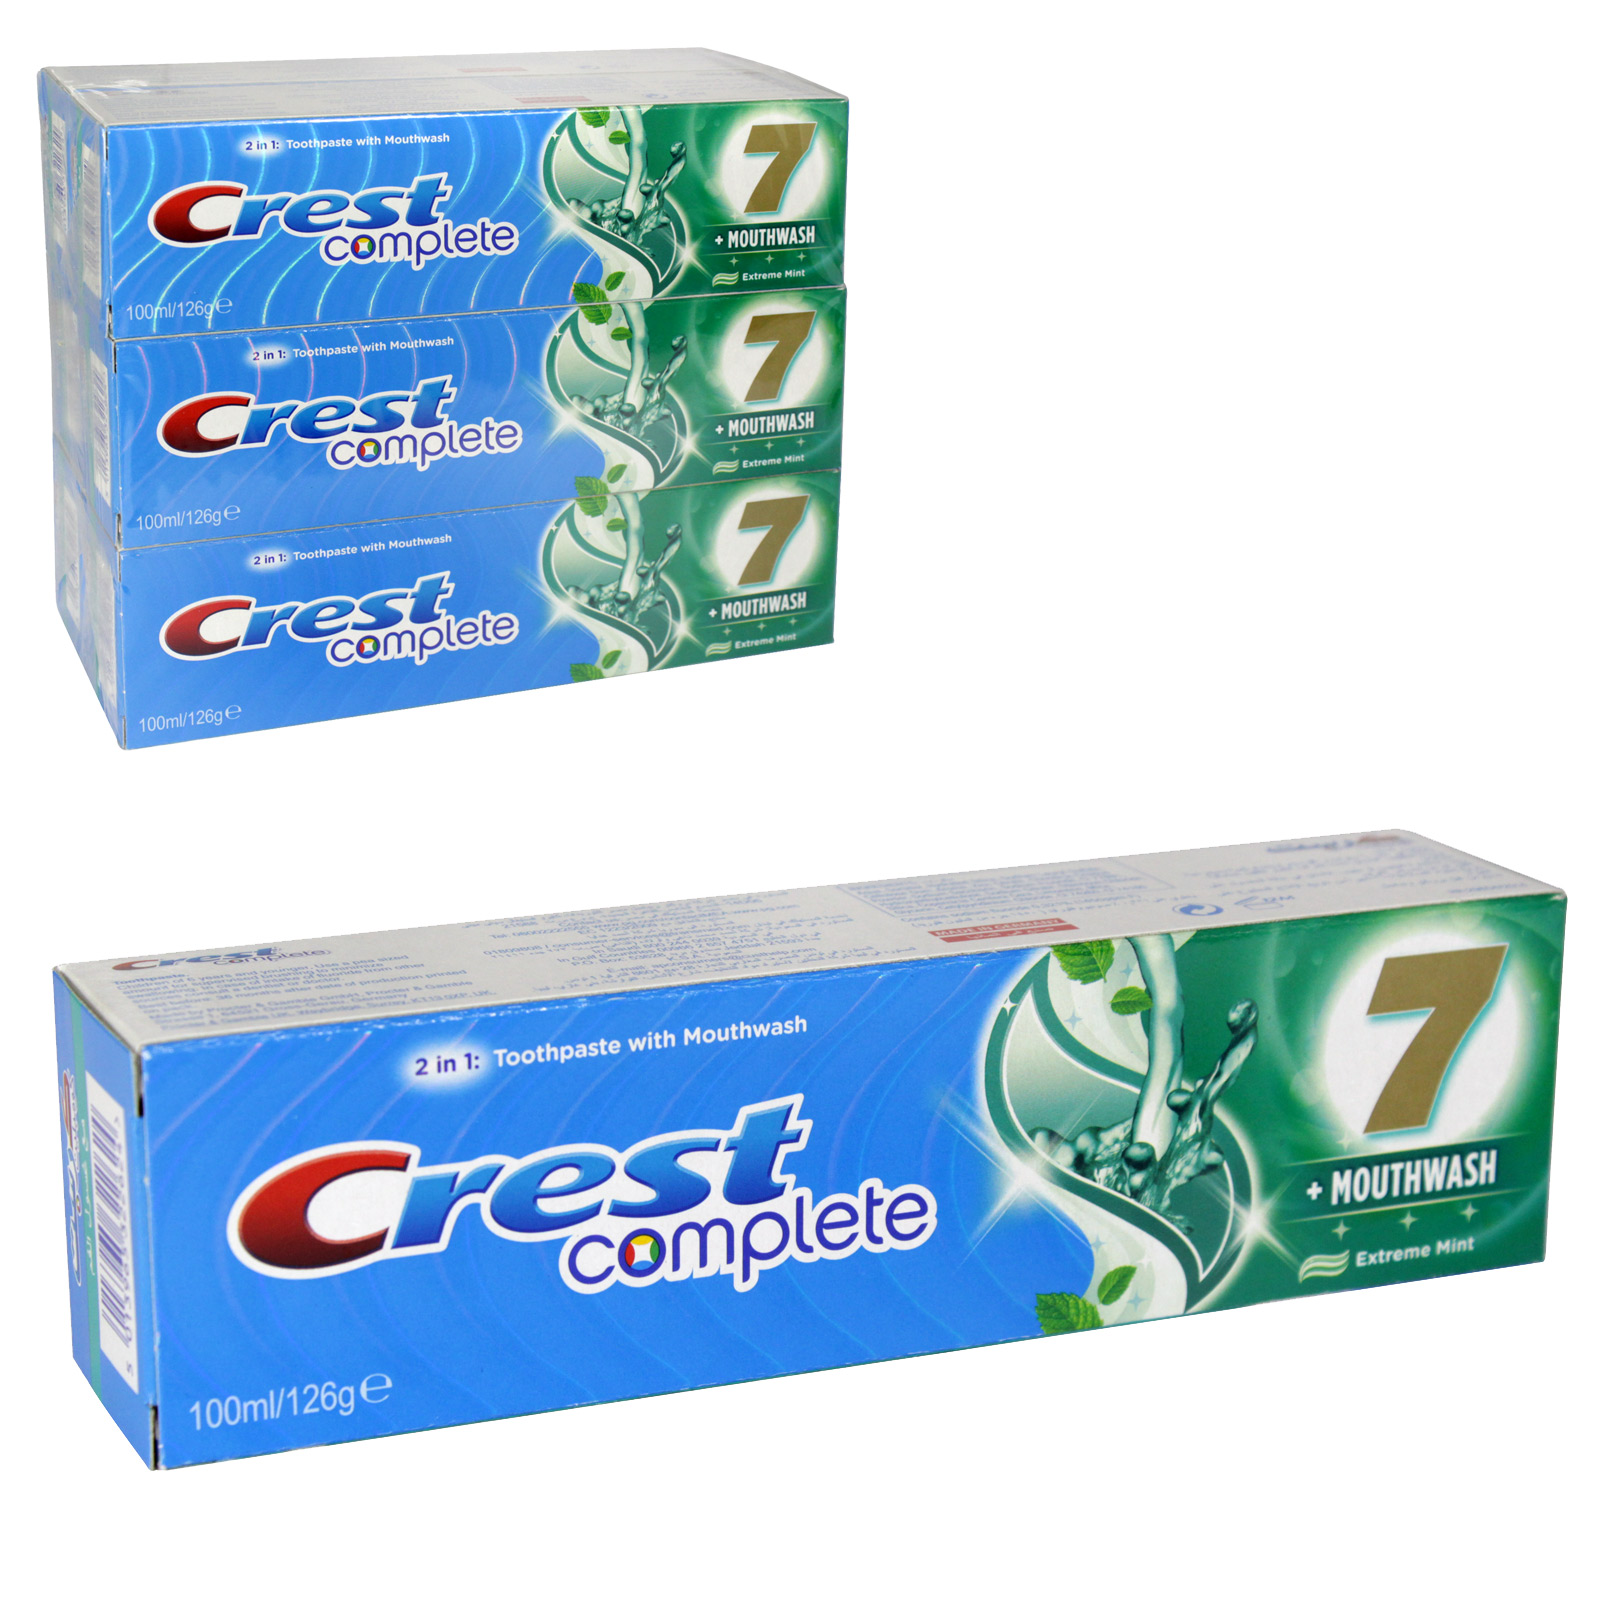 CREST COMPLETE+MOUTHWASH TOOTHPASTE 100ML EXTREME MINT